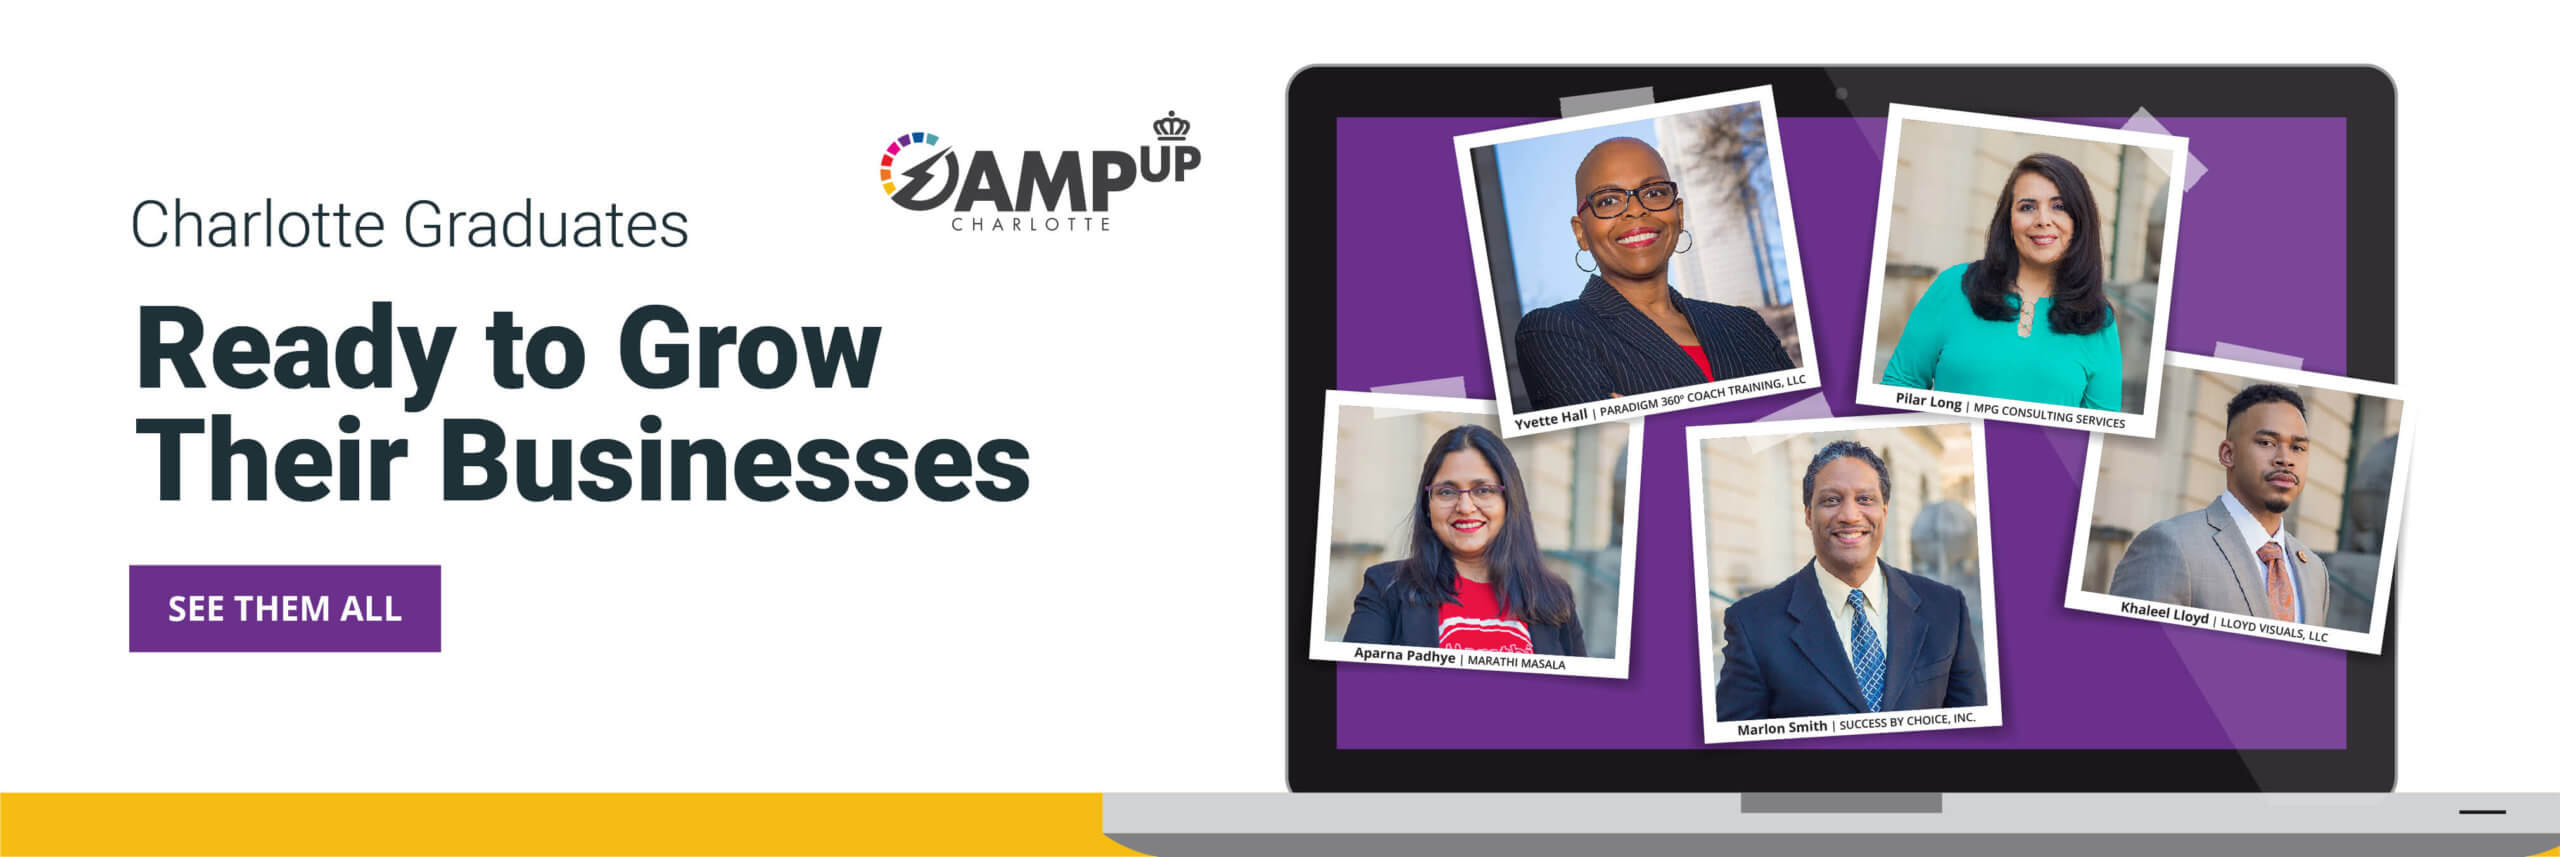 2021 AMP Up! Charlotte Graduates Ready to Grow Their Businesses